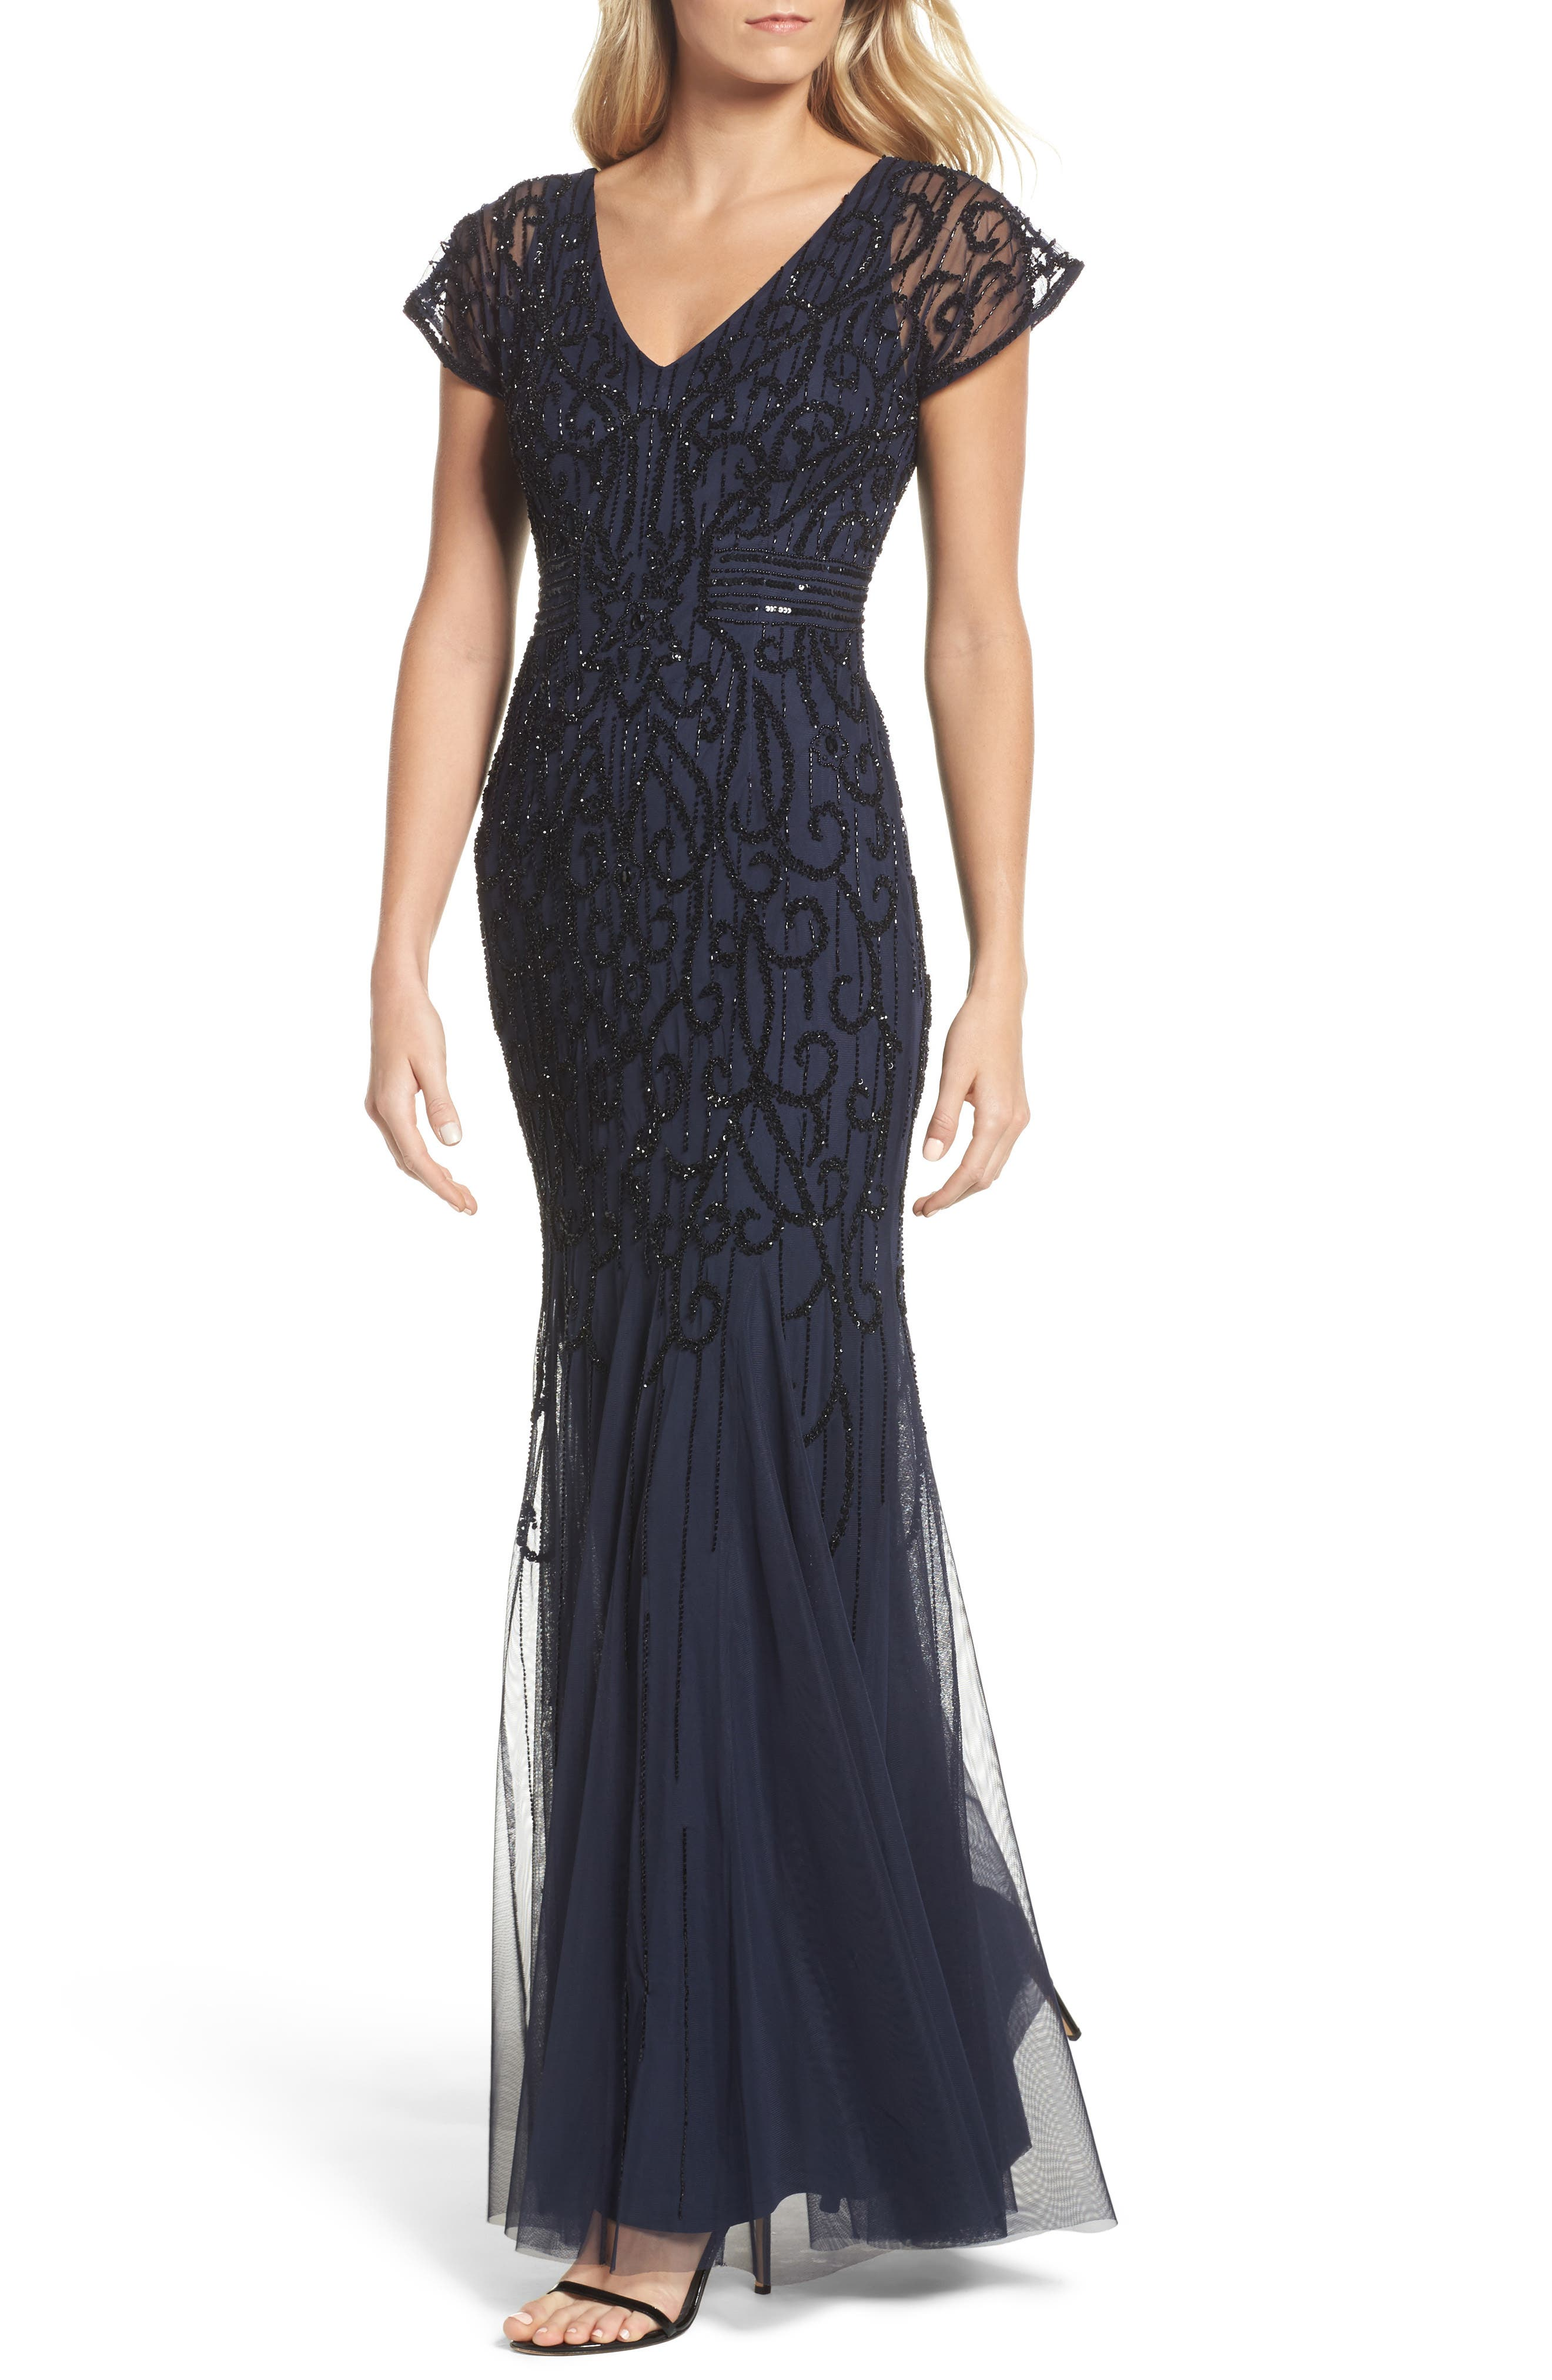 Alternate Image 1 Selected - Adrianna Papell Beaded Mesh Godet Gown